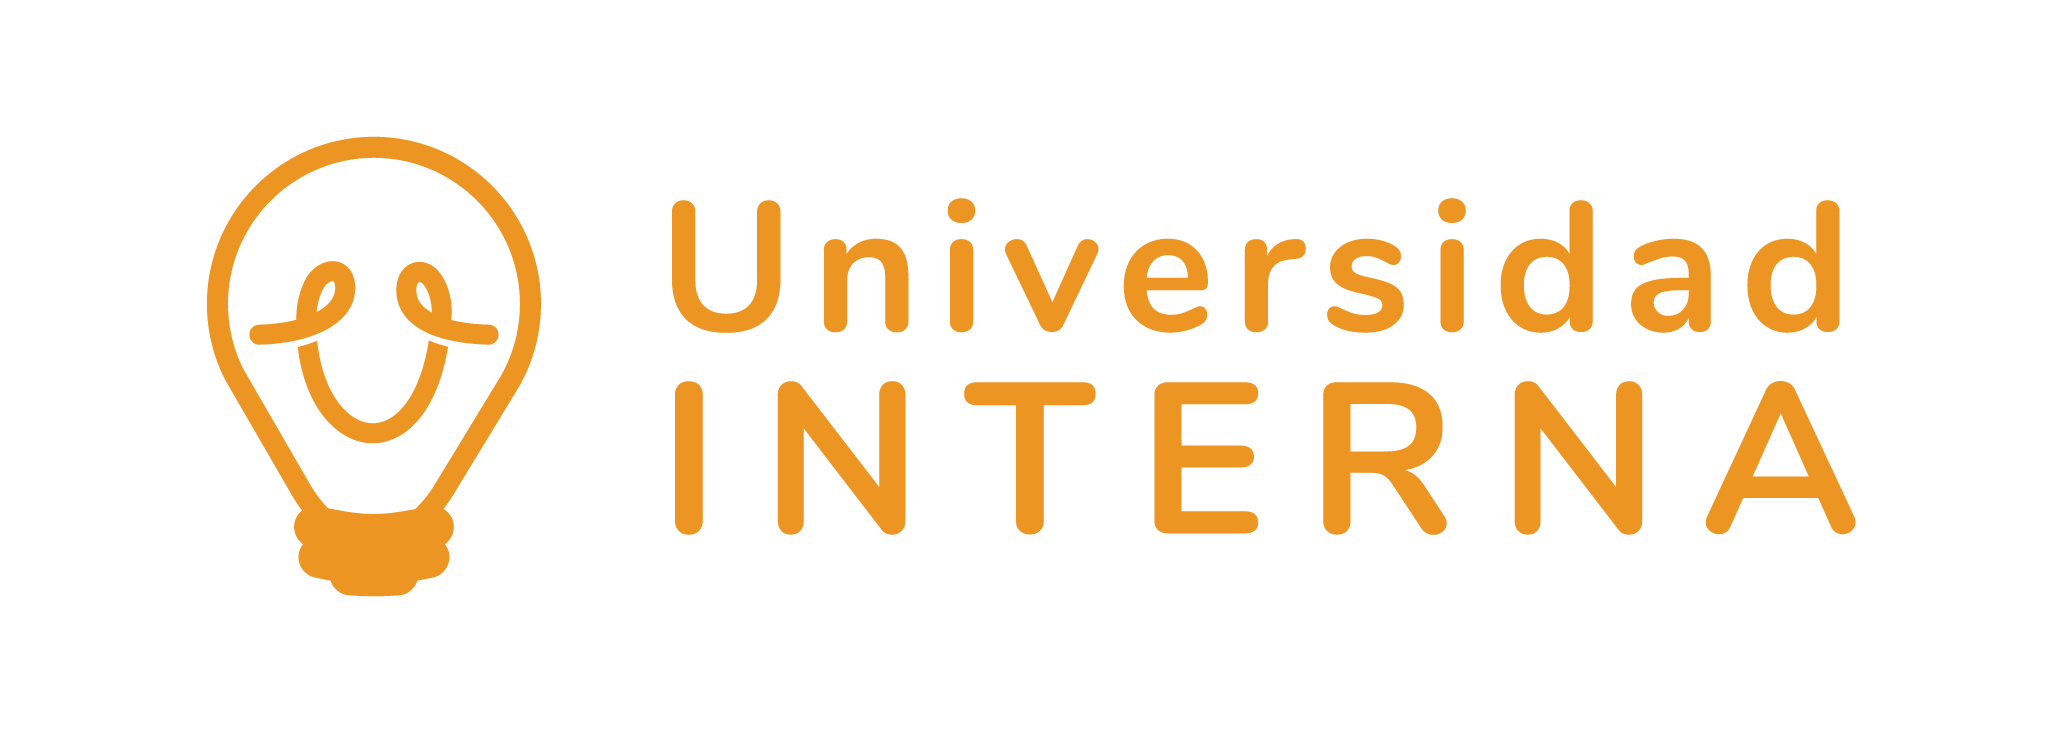 Universidad Interna